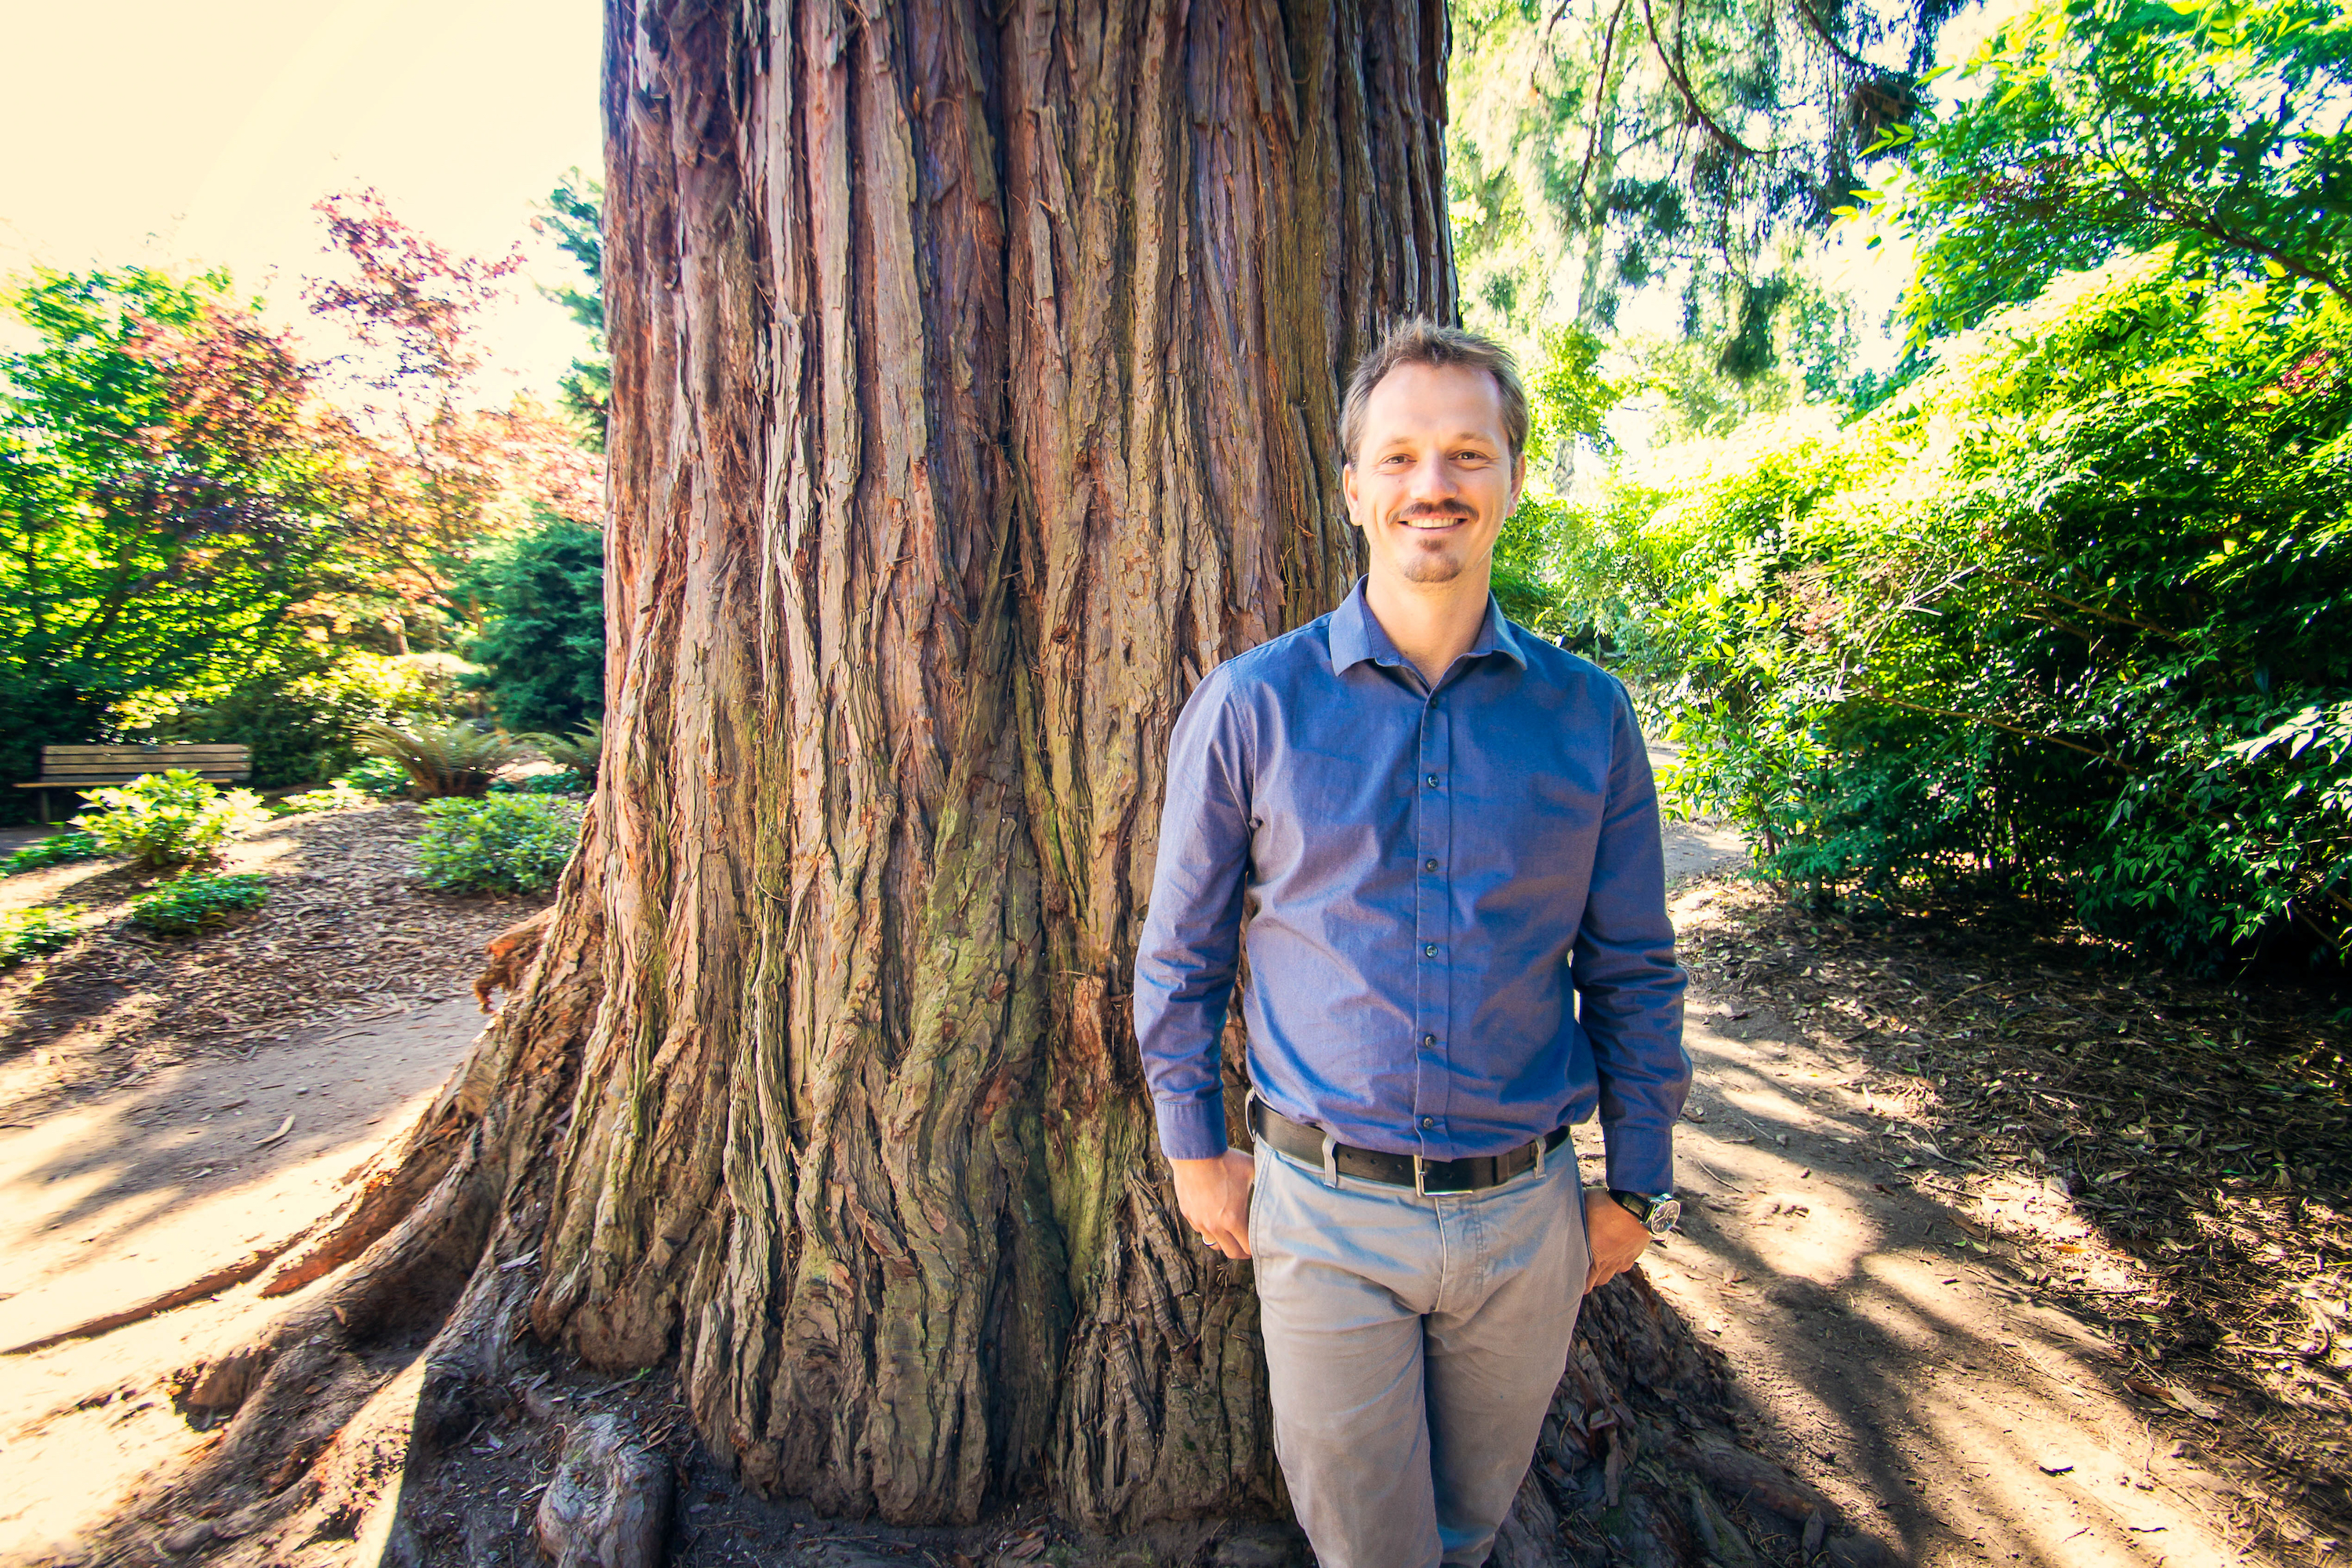 Dr. Shawn Postma, Woodinville Naturopath